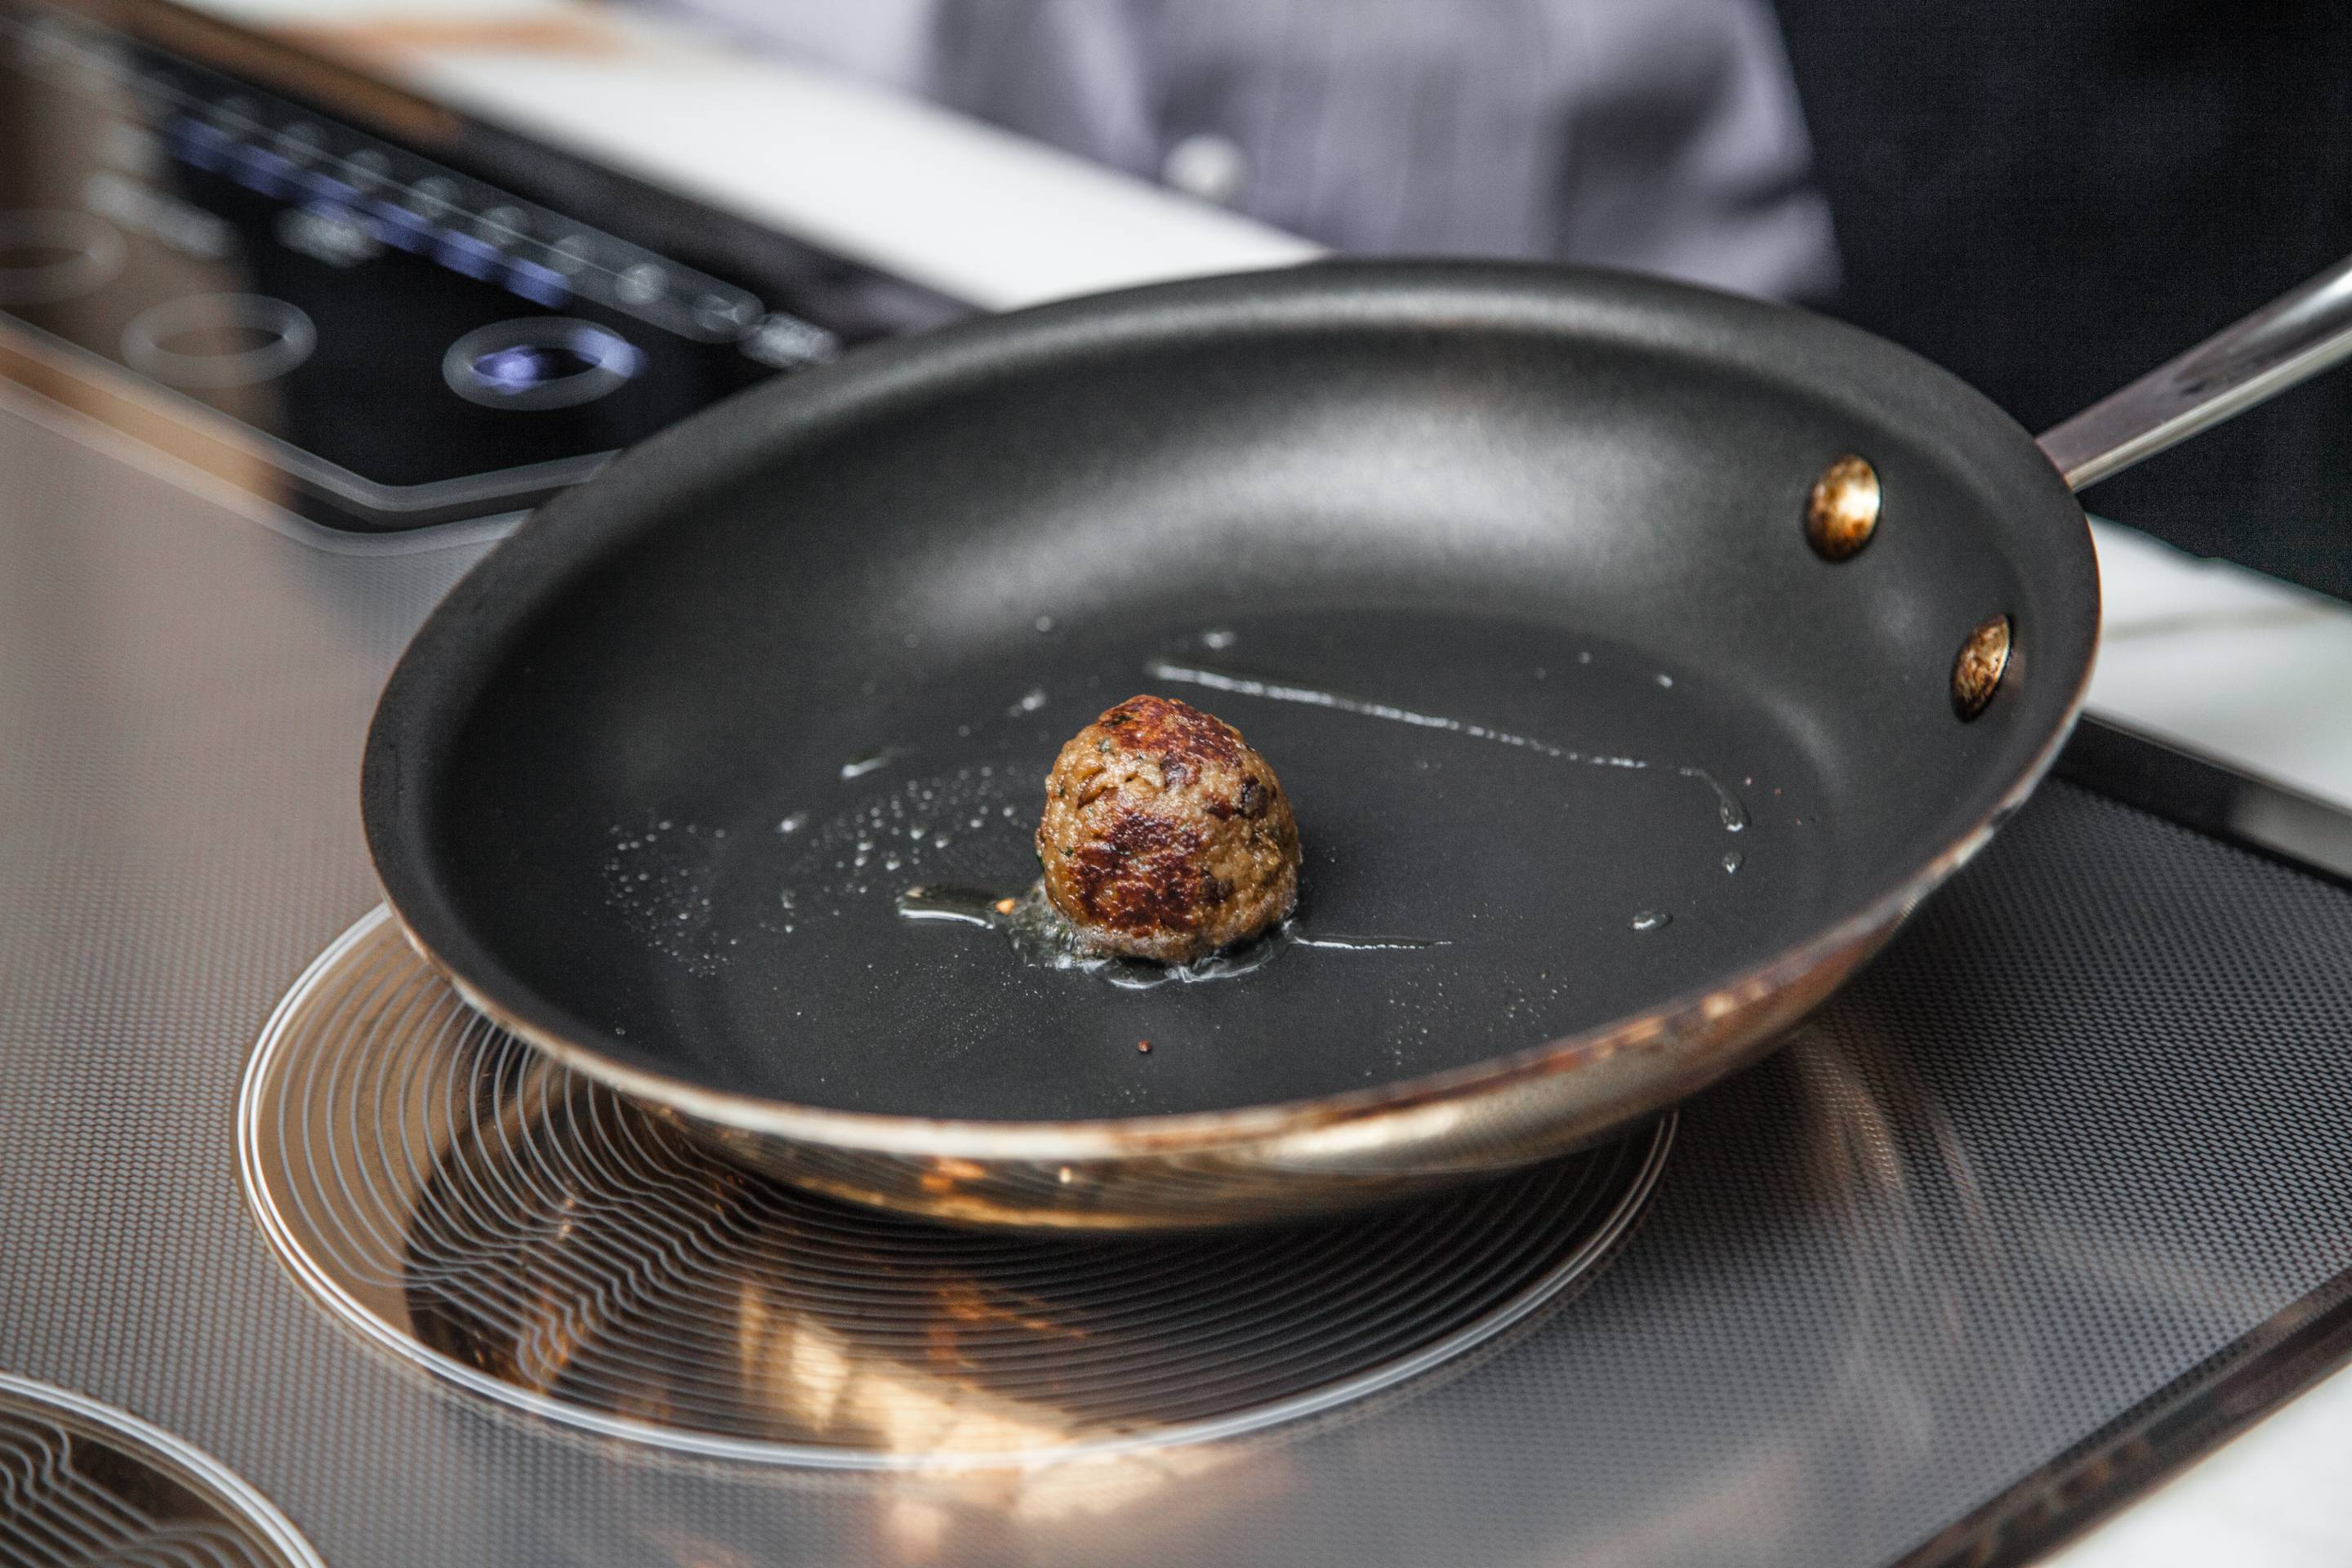 Meatball made from beef grown with stem cells.